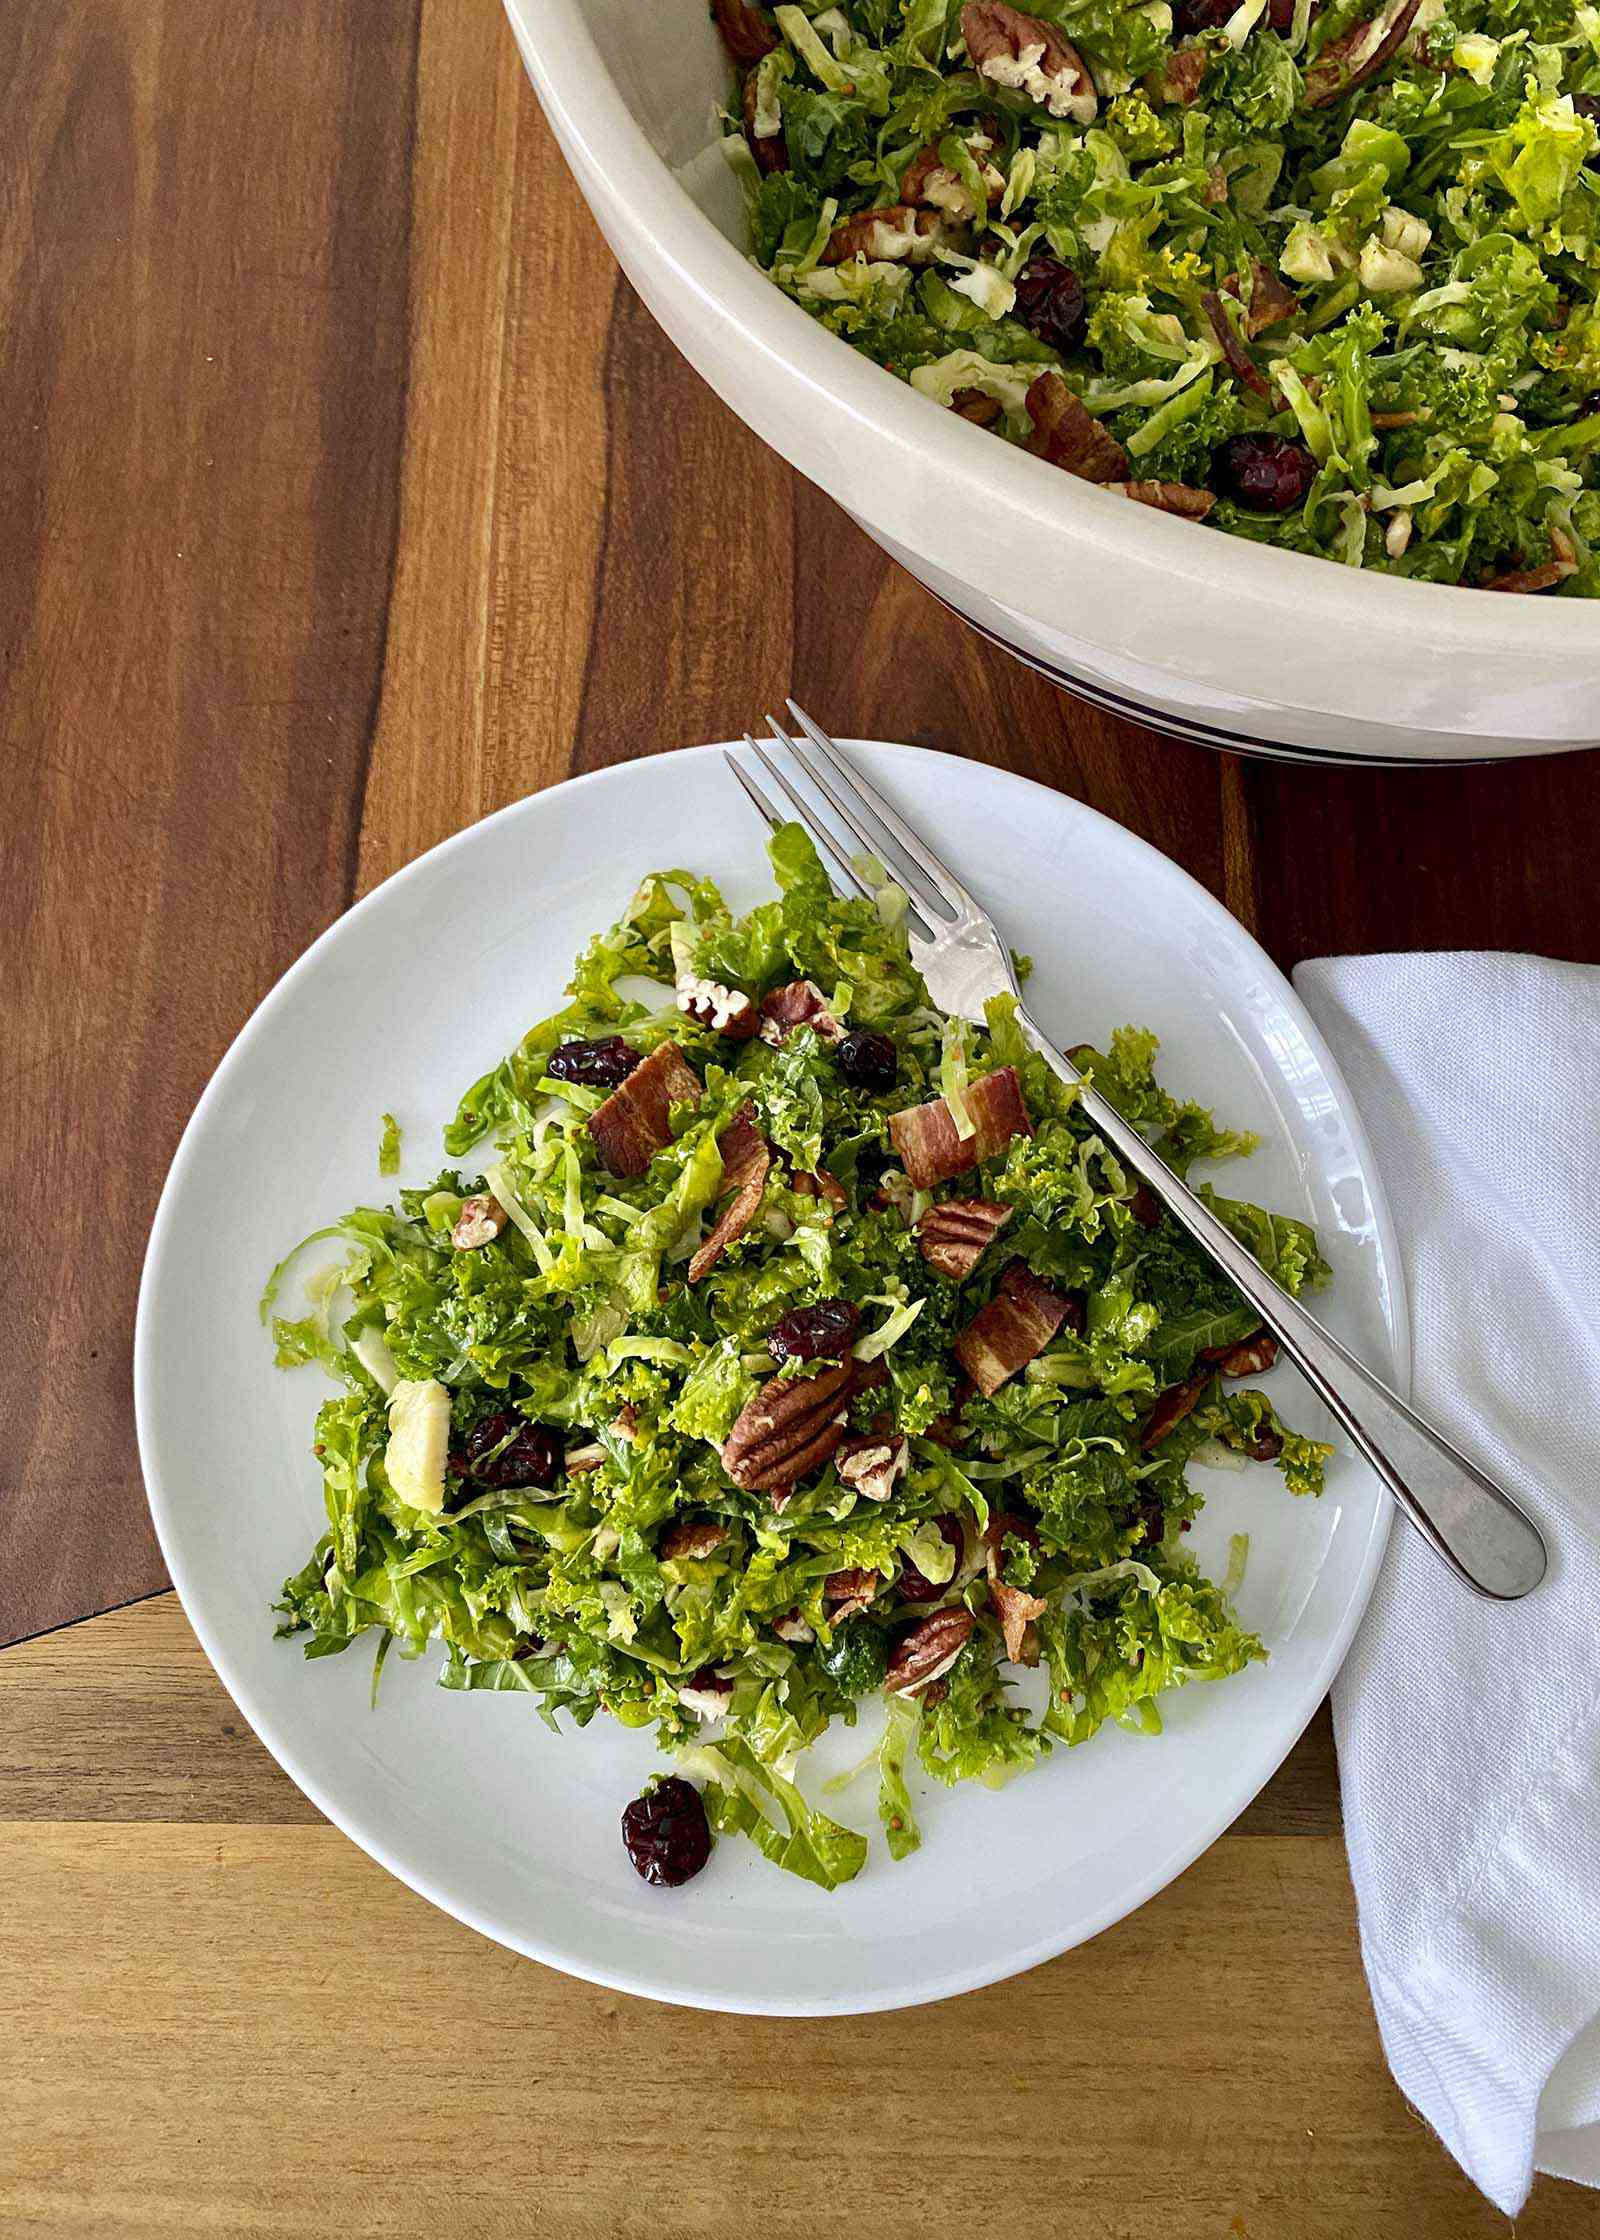 A plate and serving bowl of Raw Kale and Shaved Brussels Sprout Salad with Maple Dijon Vinaigrette.